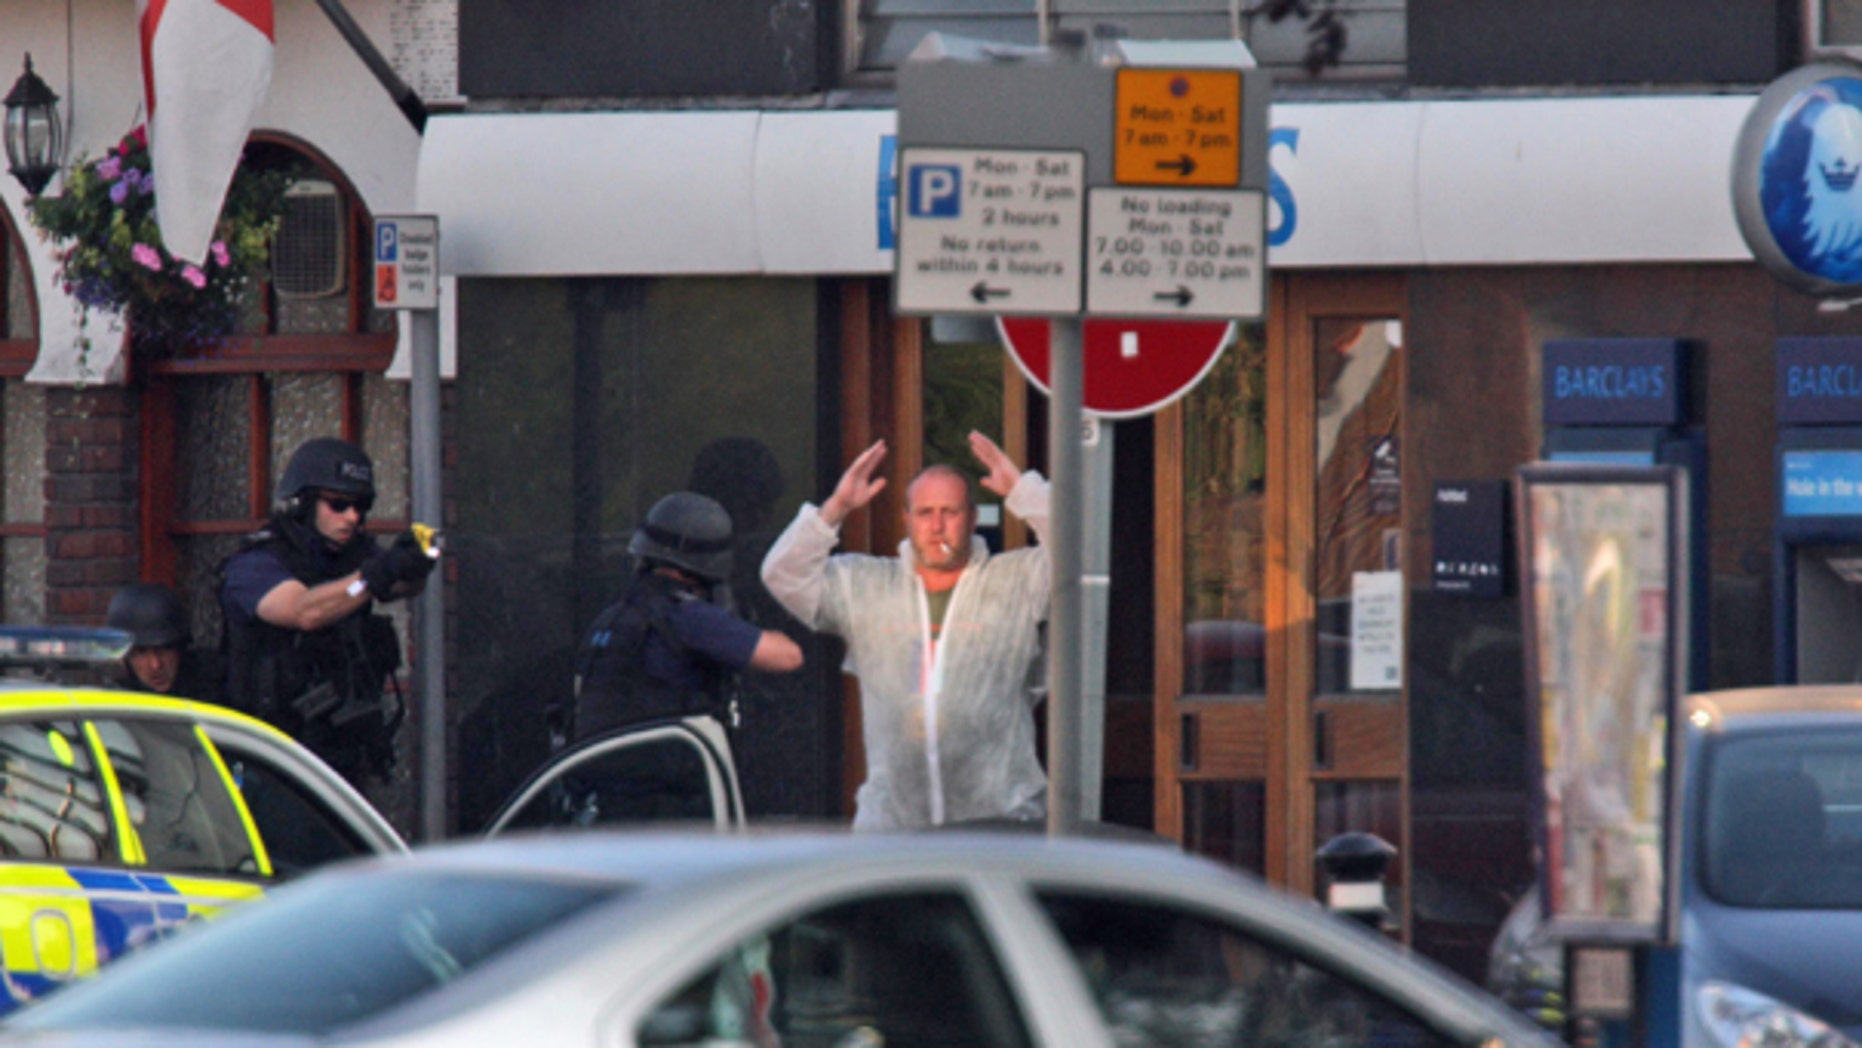 June 28: Armed police cover a man as he leaves a Barclays bank with his hands up in Ashford, England.  Armed officers deployed to the scene of a possible hostage situation at a bank near London's Heathrow Airport. (AP)